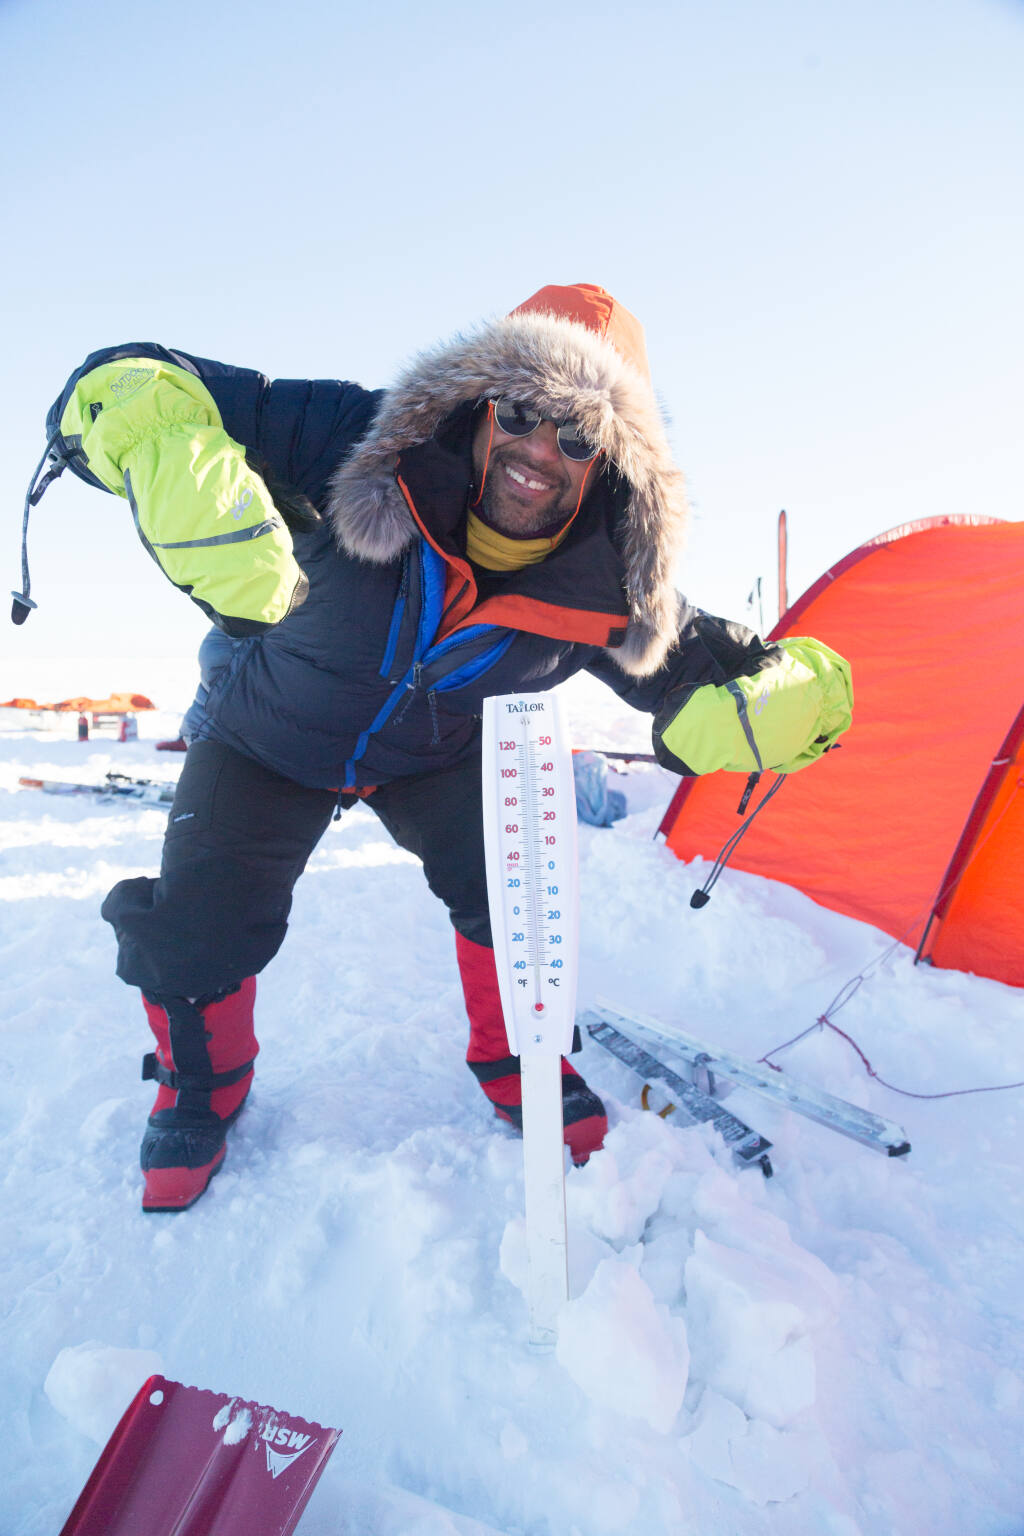 In 2018, James Edward Mills participated in a cold-weather travel training program on Lake Winnipeg in Manitoba, Canada, where temperatures descended to about 30 degrees below zero. (Erick Larsen)